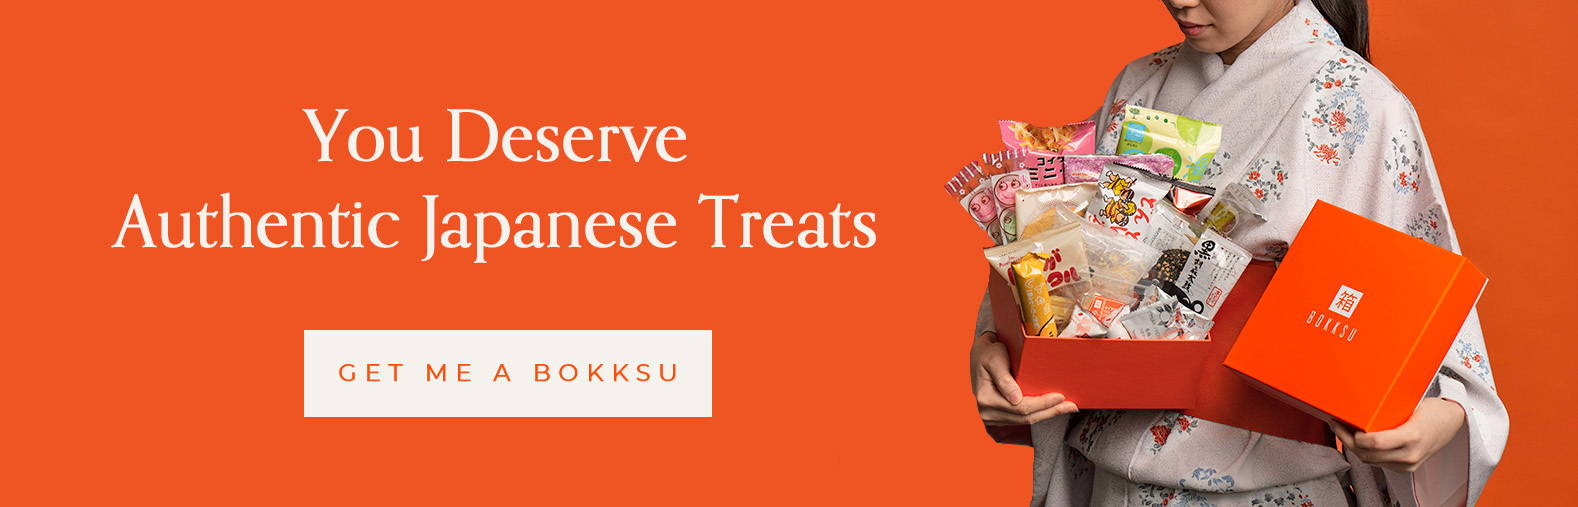 subscribe to Bokksu Japanese snack subscription box